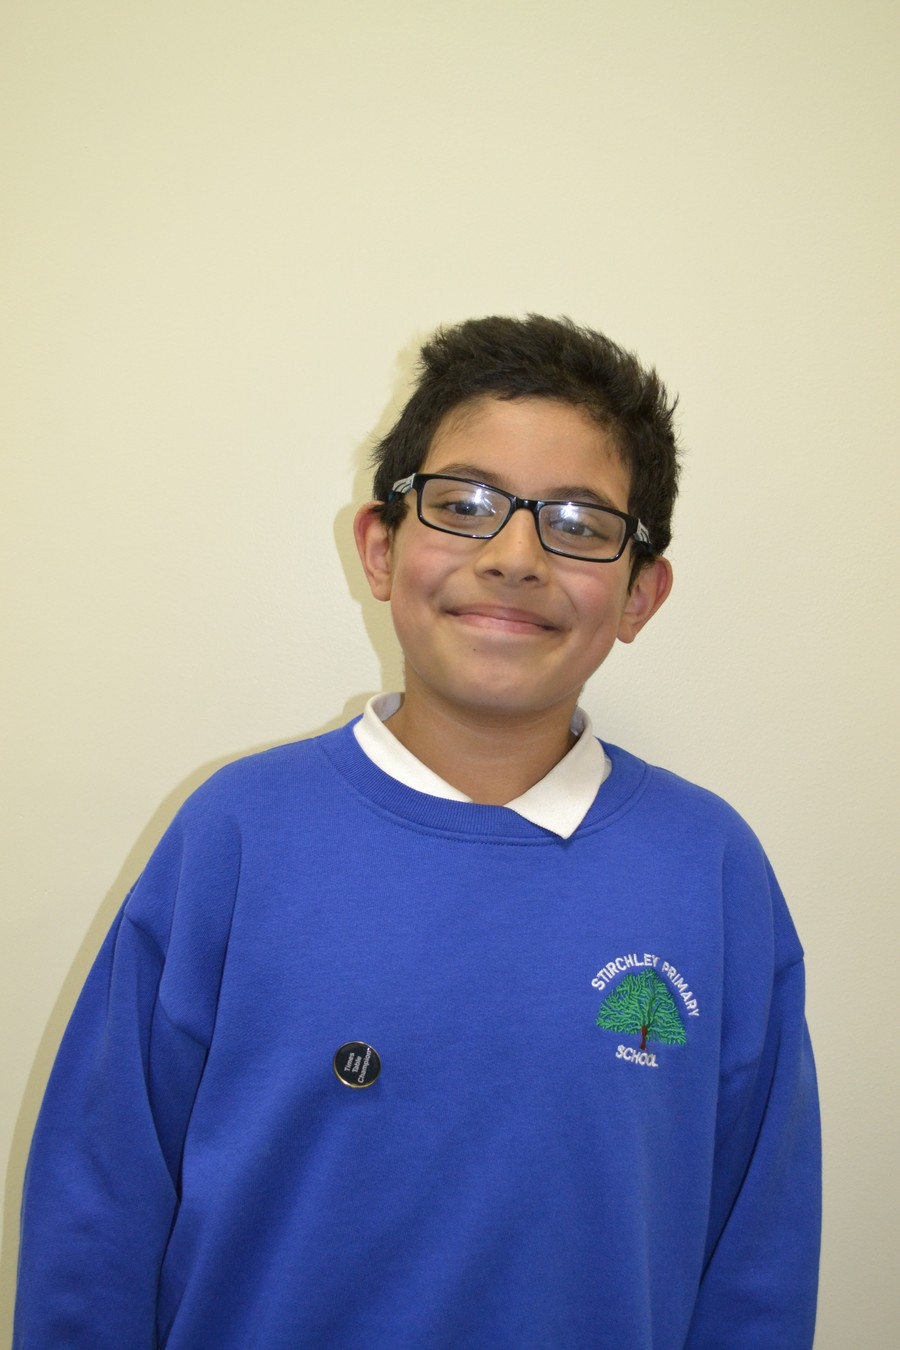 Well done Ahsanul!